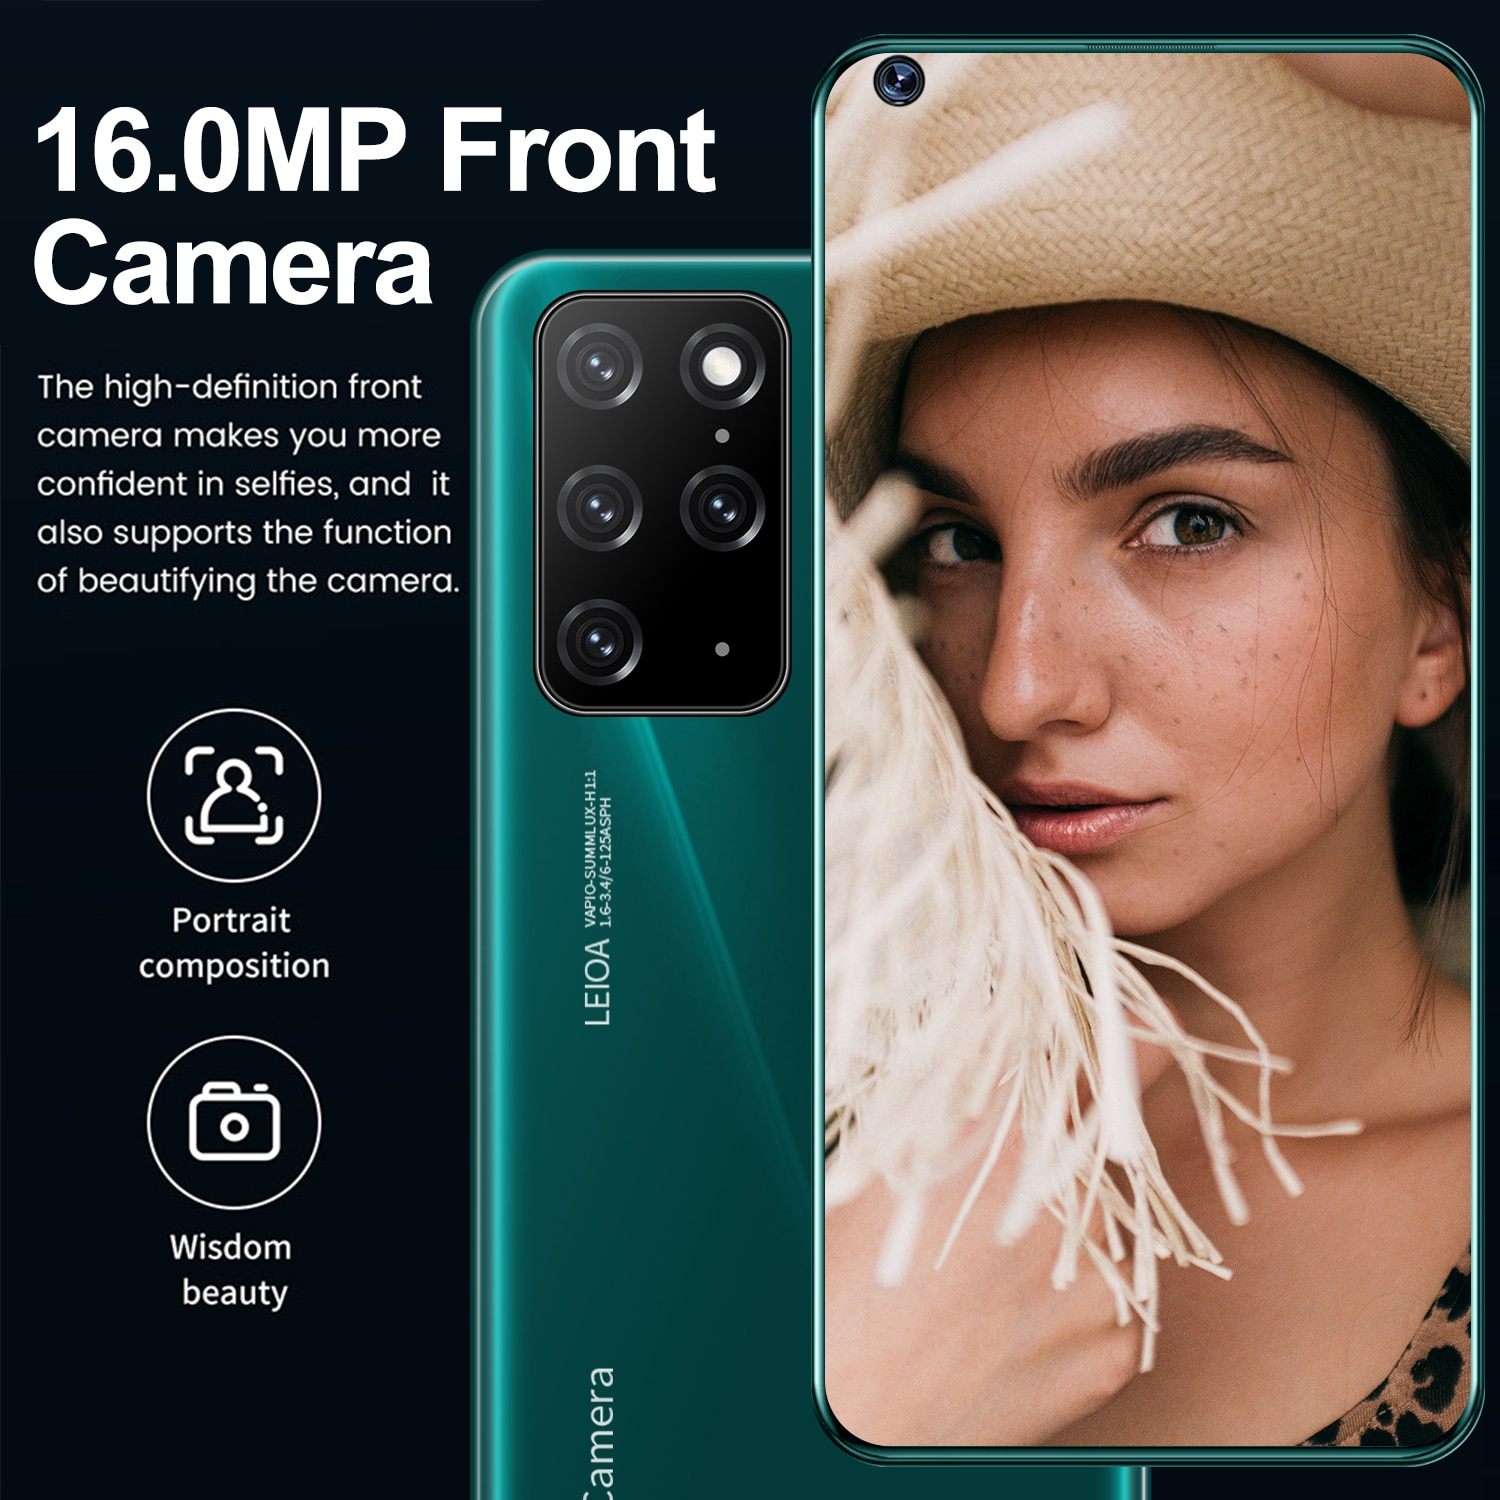 Galay S21 Ultra Smartphone 7.2 inch 12GB+512GB 5000mAh Unlock Mobile phones Global Version 4G 5G Android 10 Celulares Cell phone enlarge